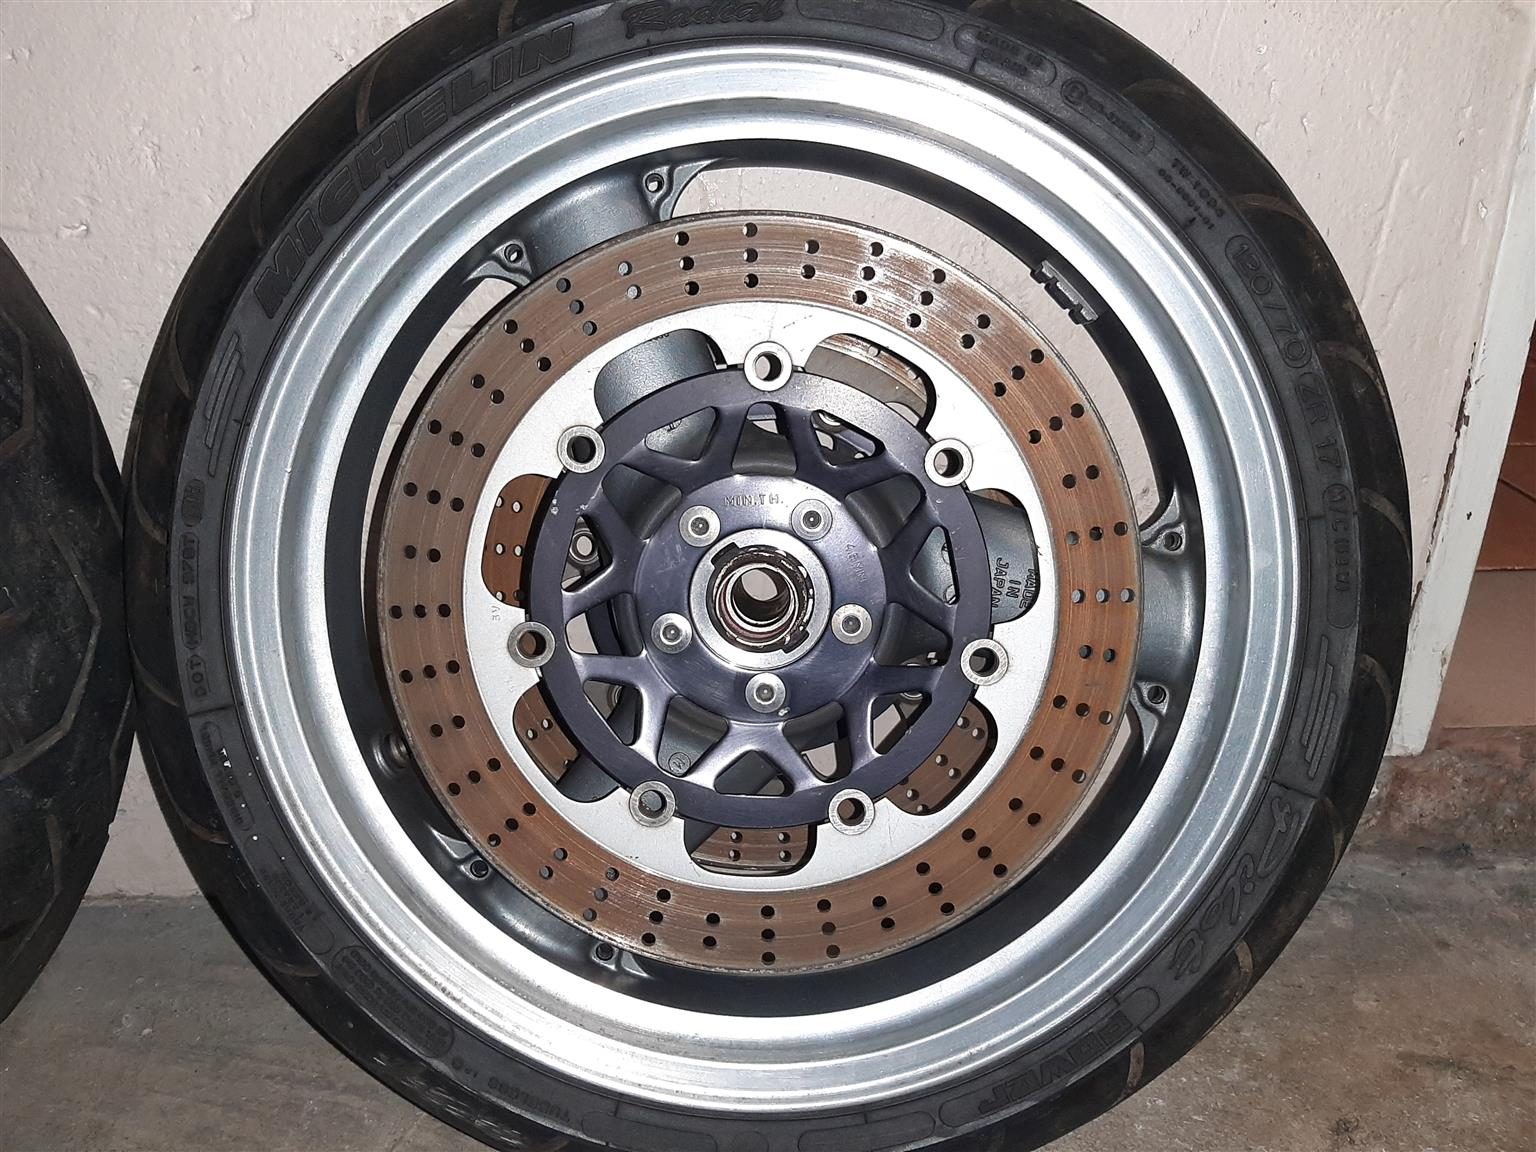 Zx9r wheels and tyres B-model